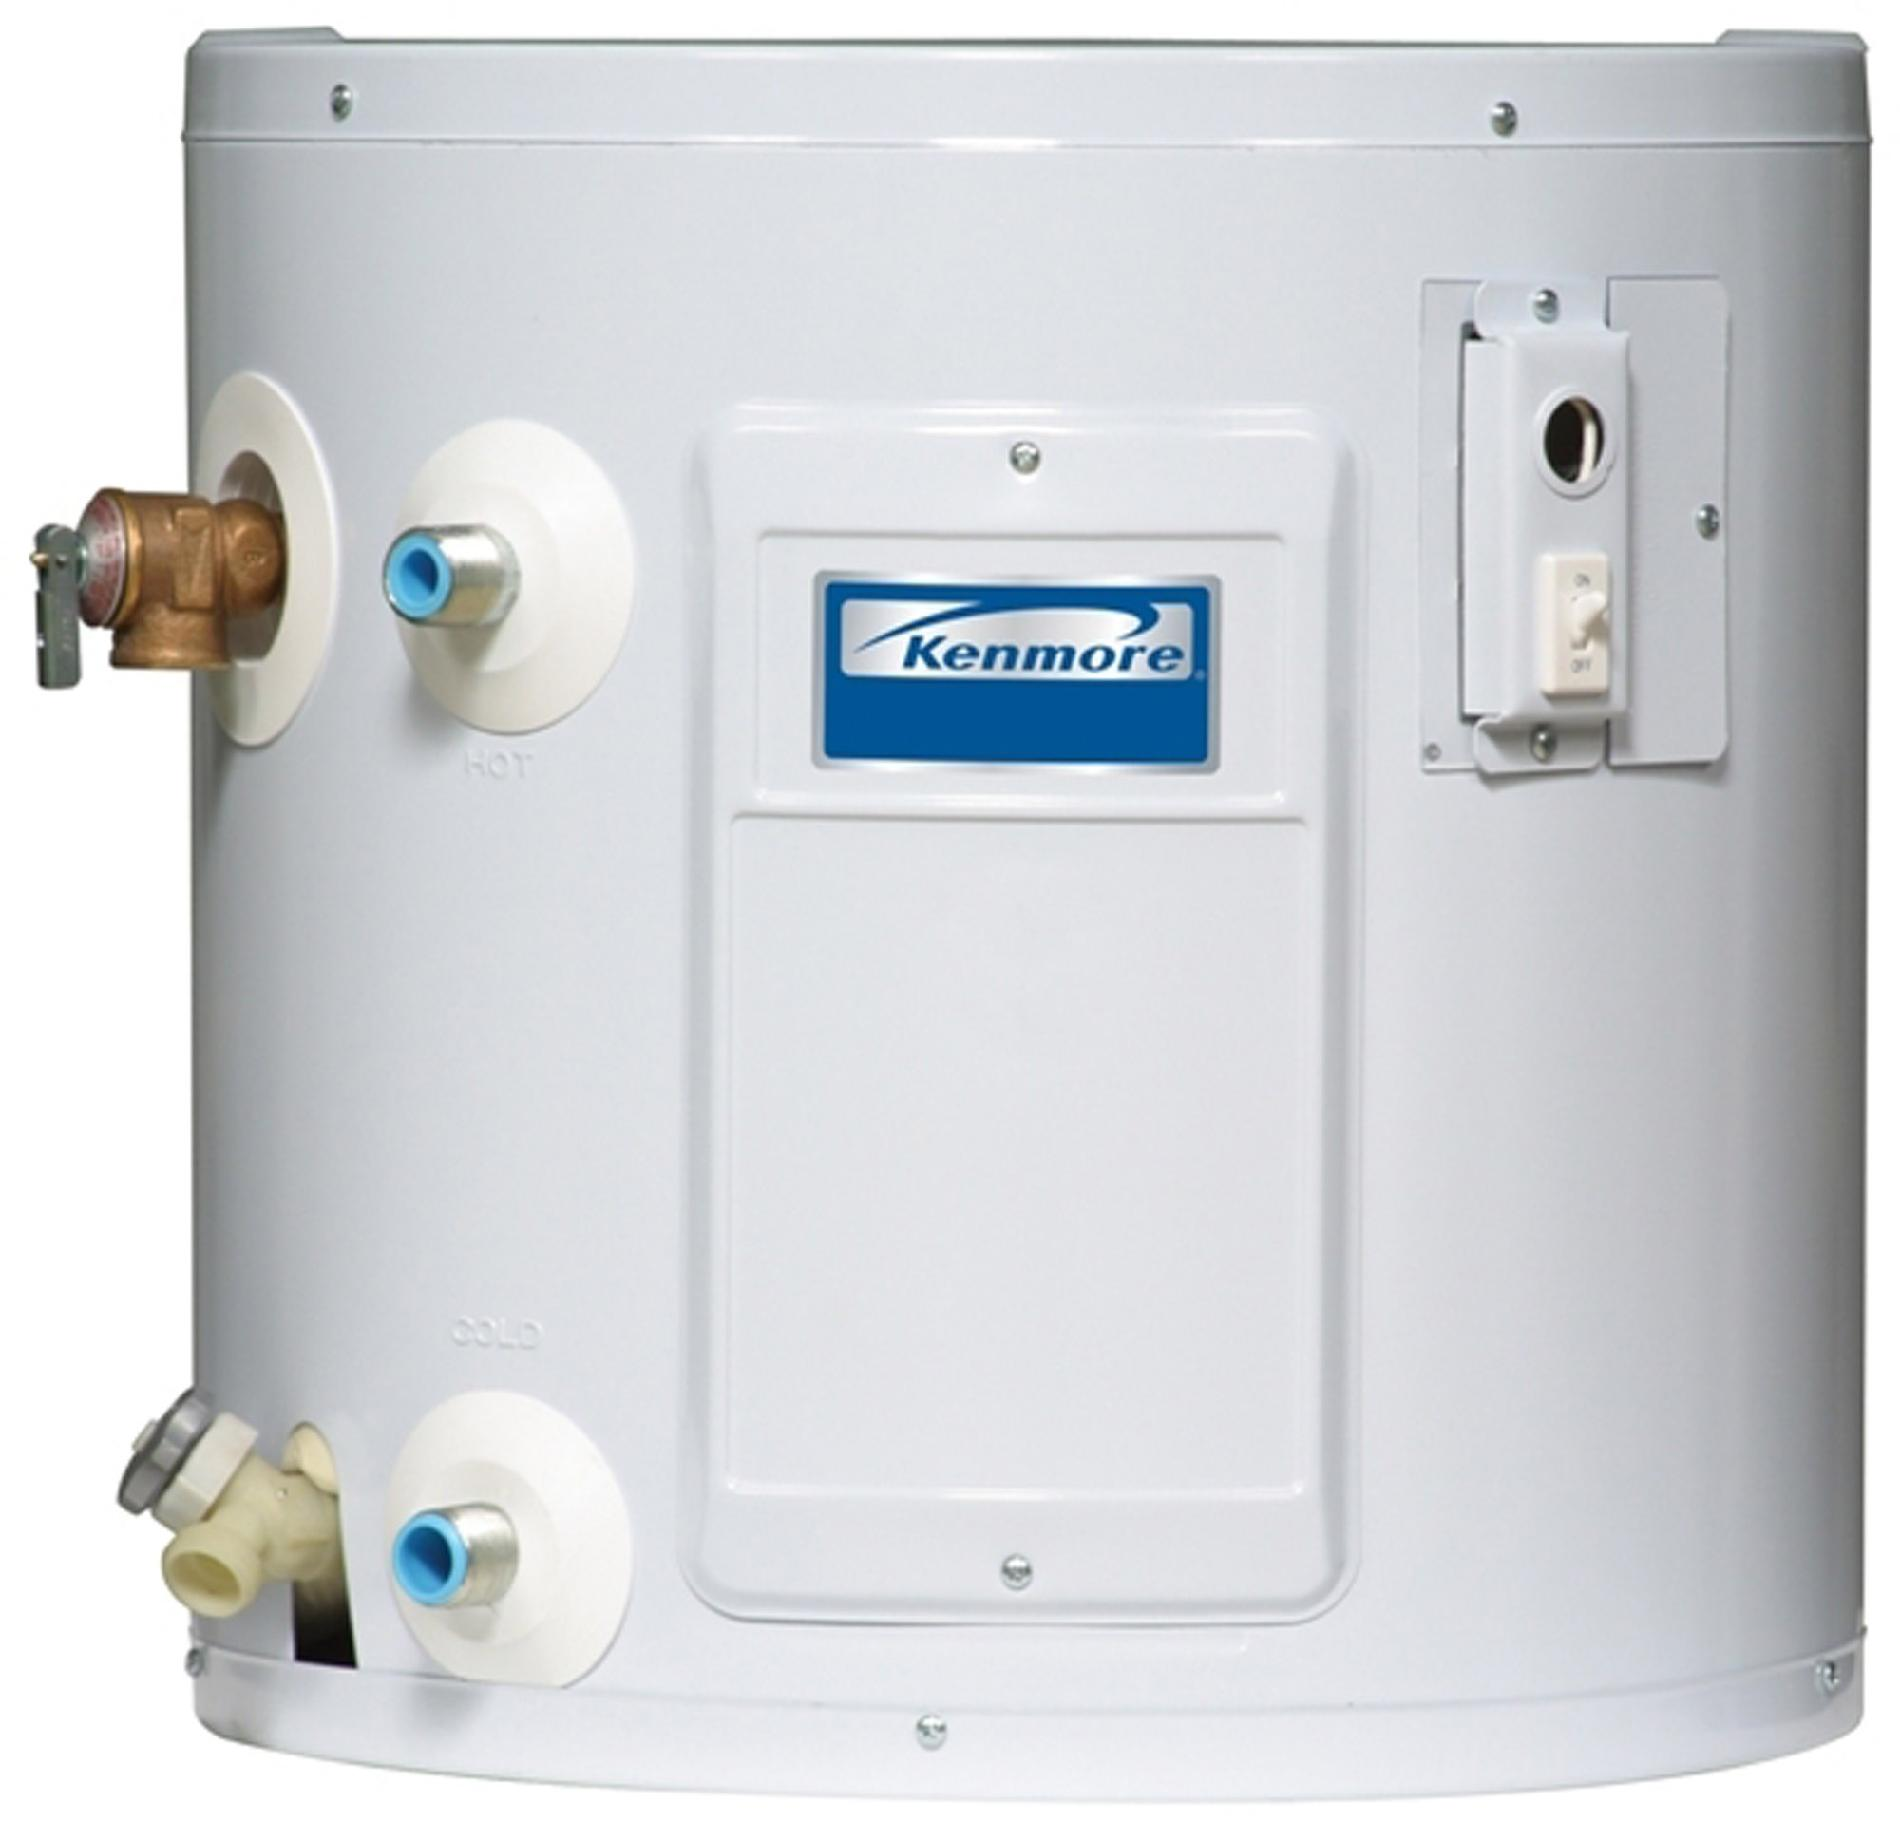 Kenmore 30 gal. Compact 6-Year Electric Water Heater - Limited Availability